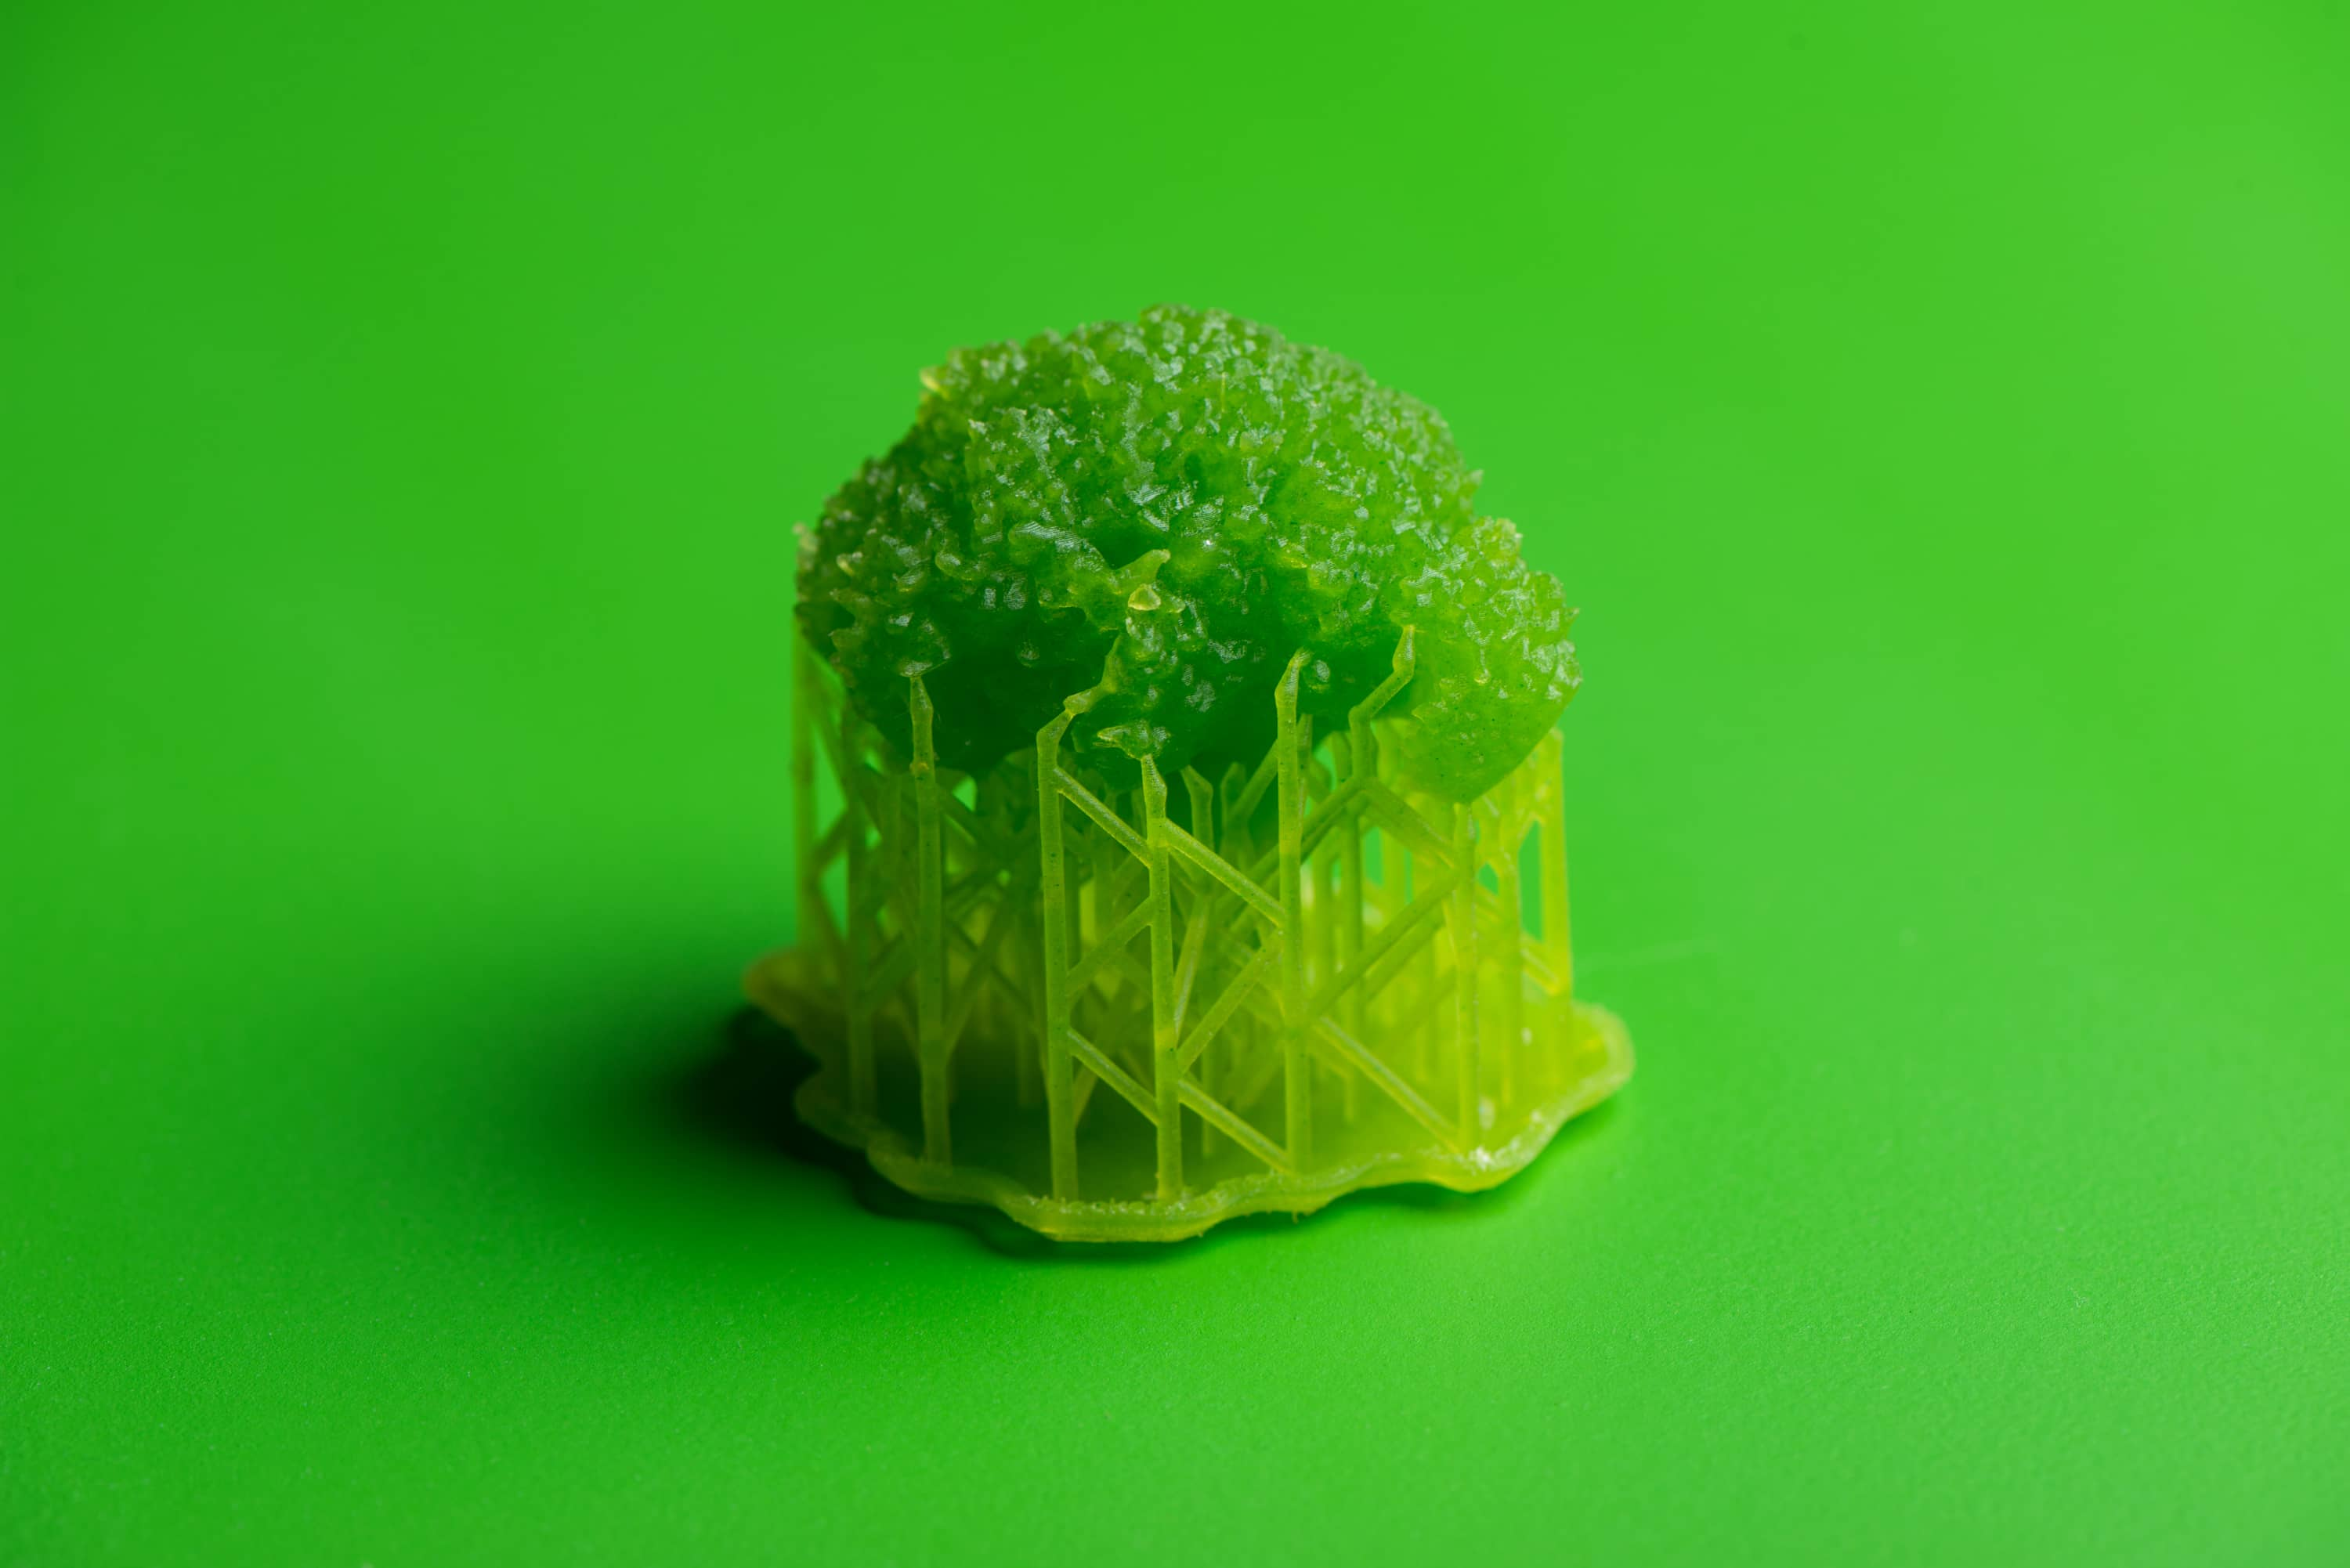 3d printed and dye broccoli